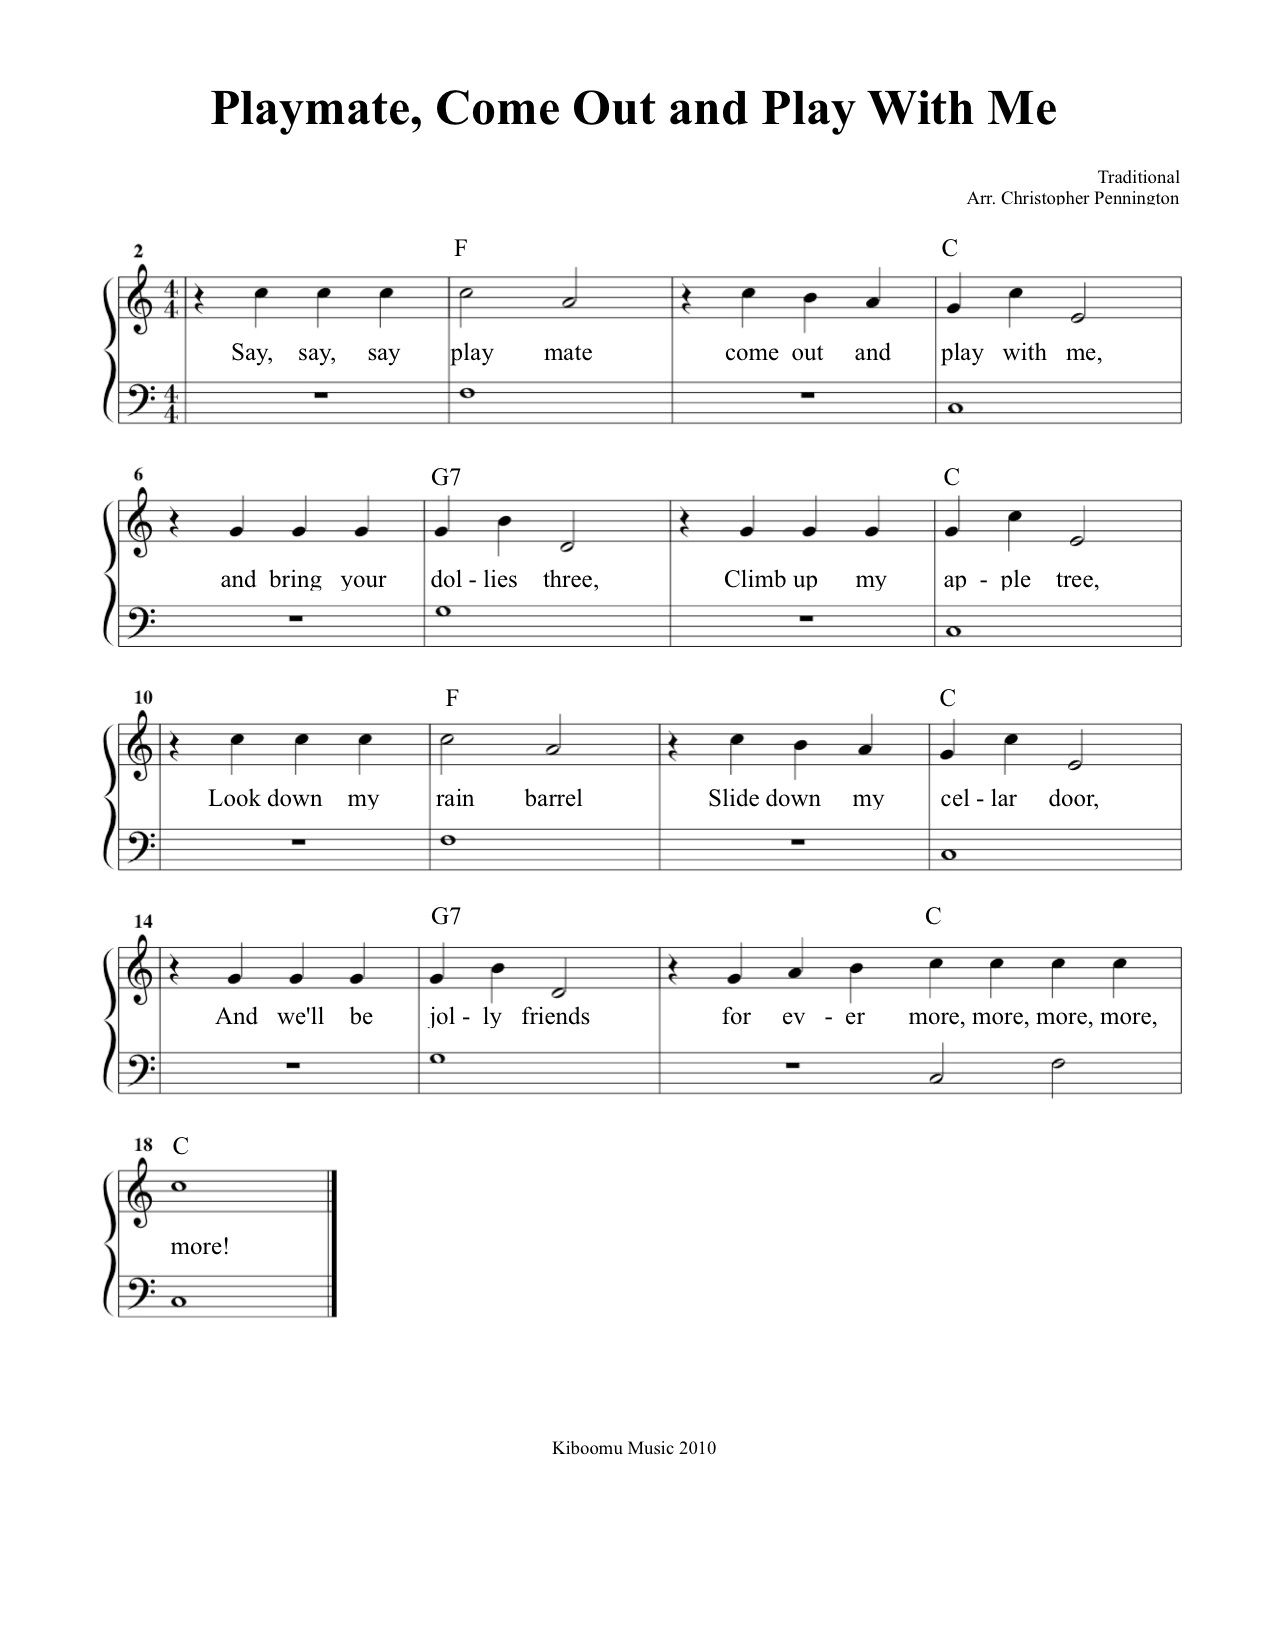 Playmate Come Out And Play With Me Sheet Music Download